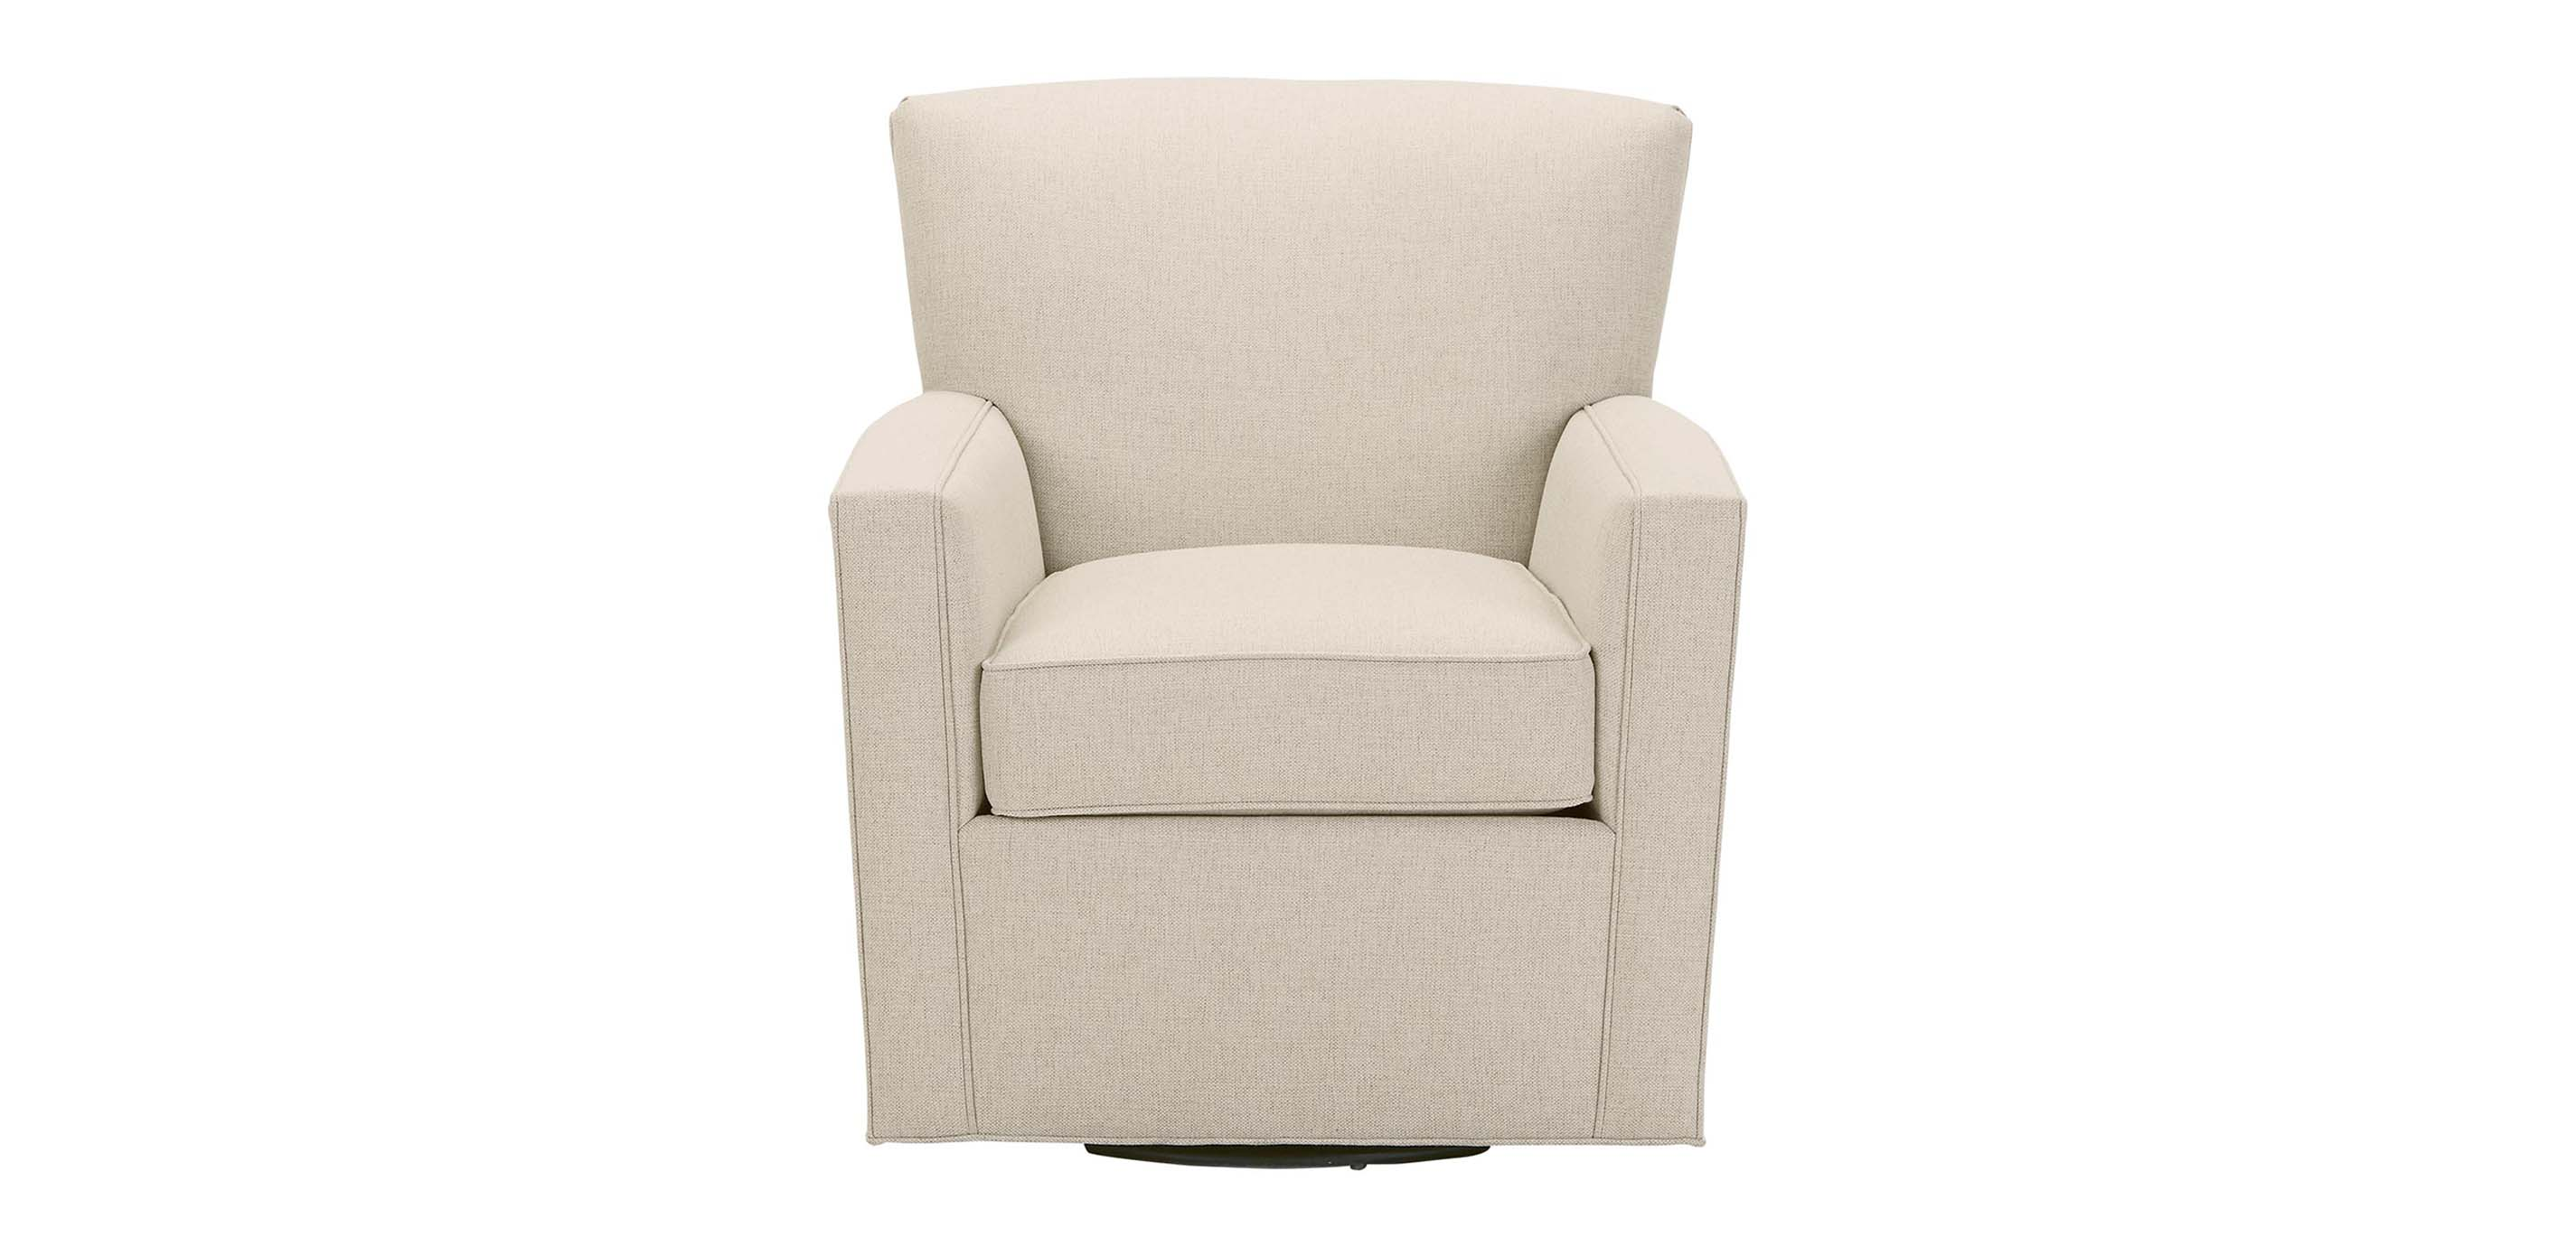 swivel chair near me visitor chairs for office shop living room chaise accent ethan custom quick ship